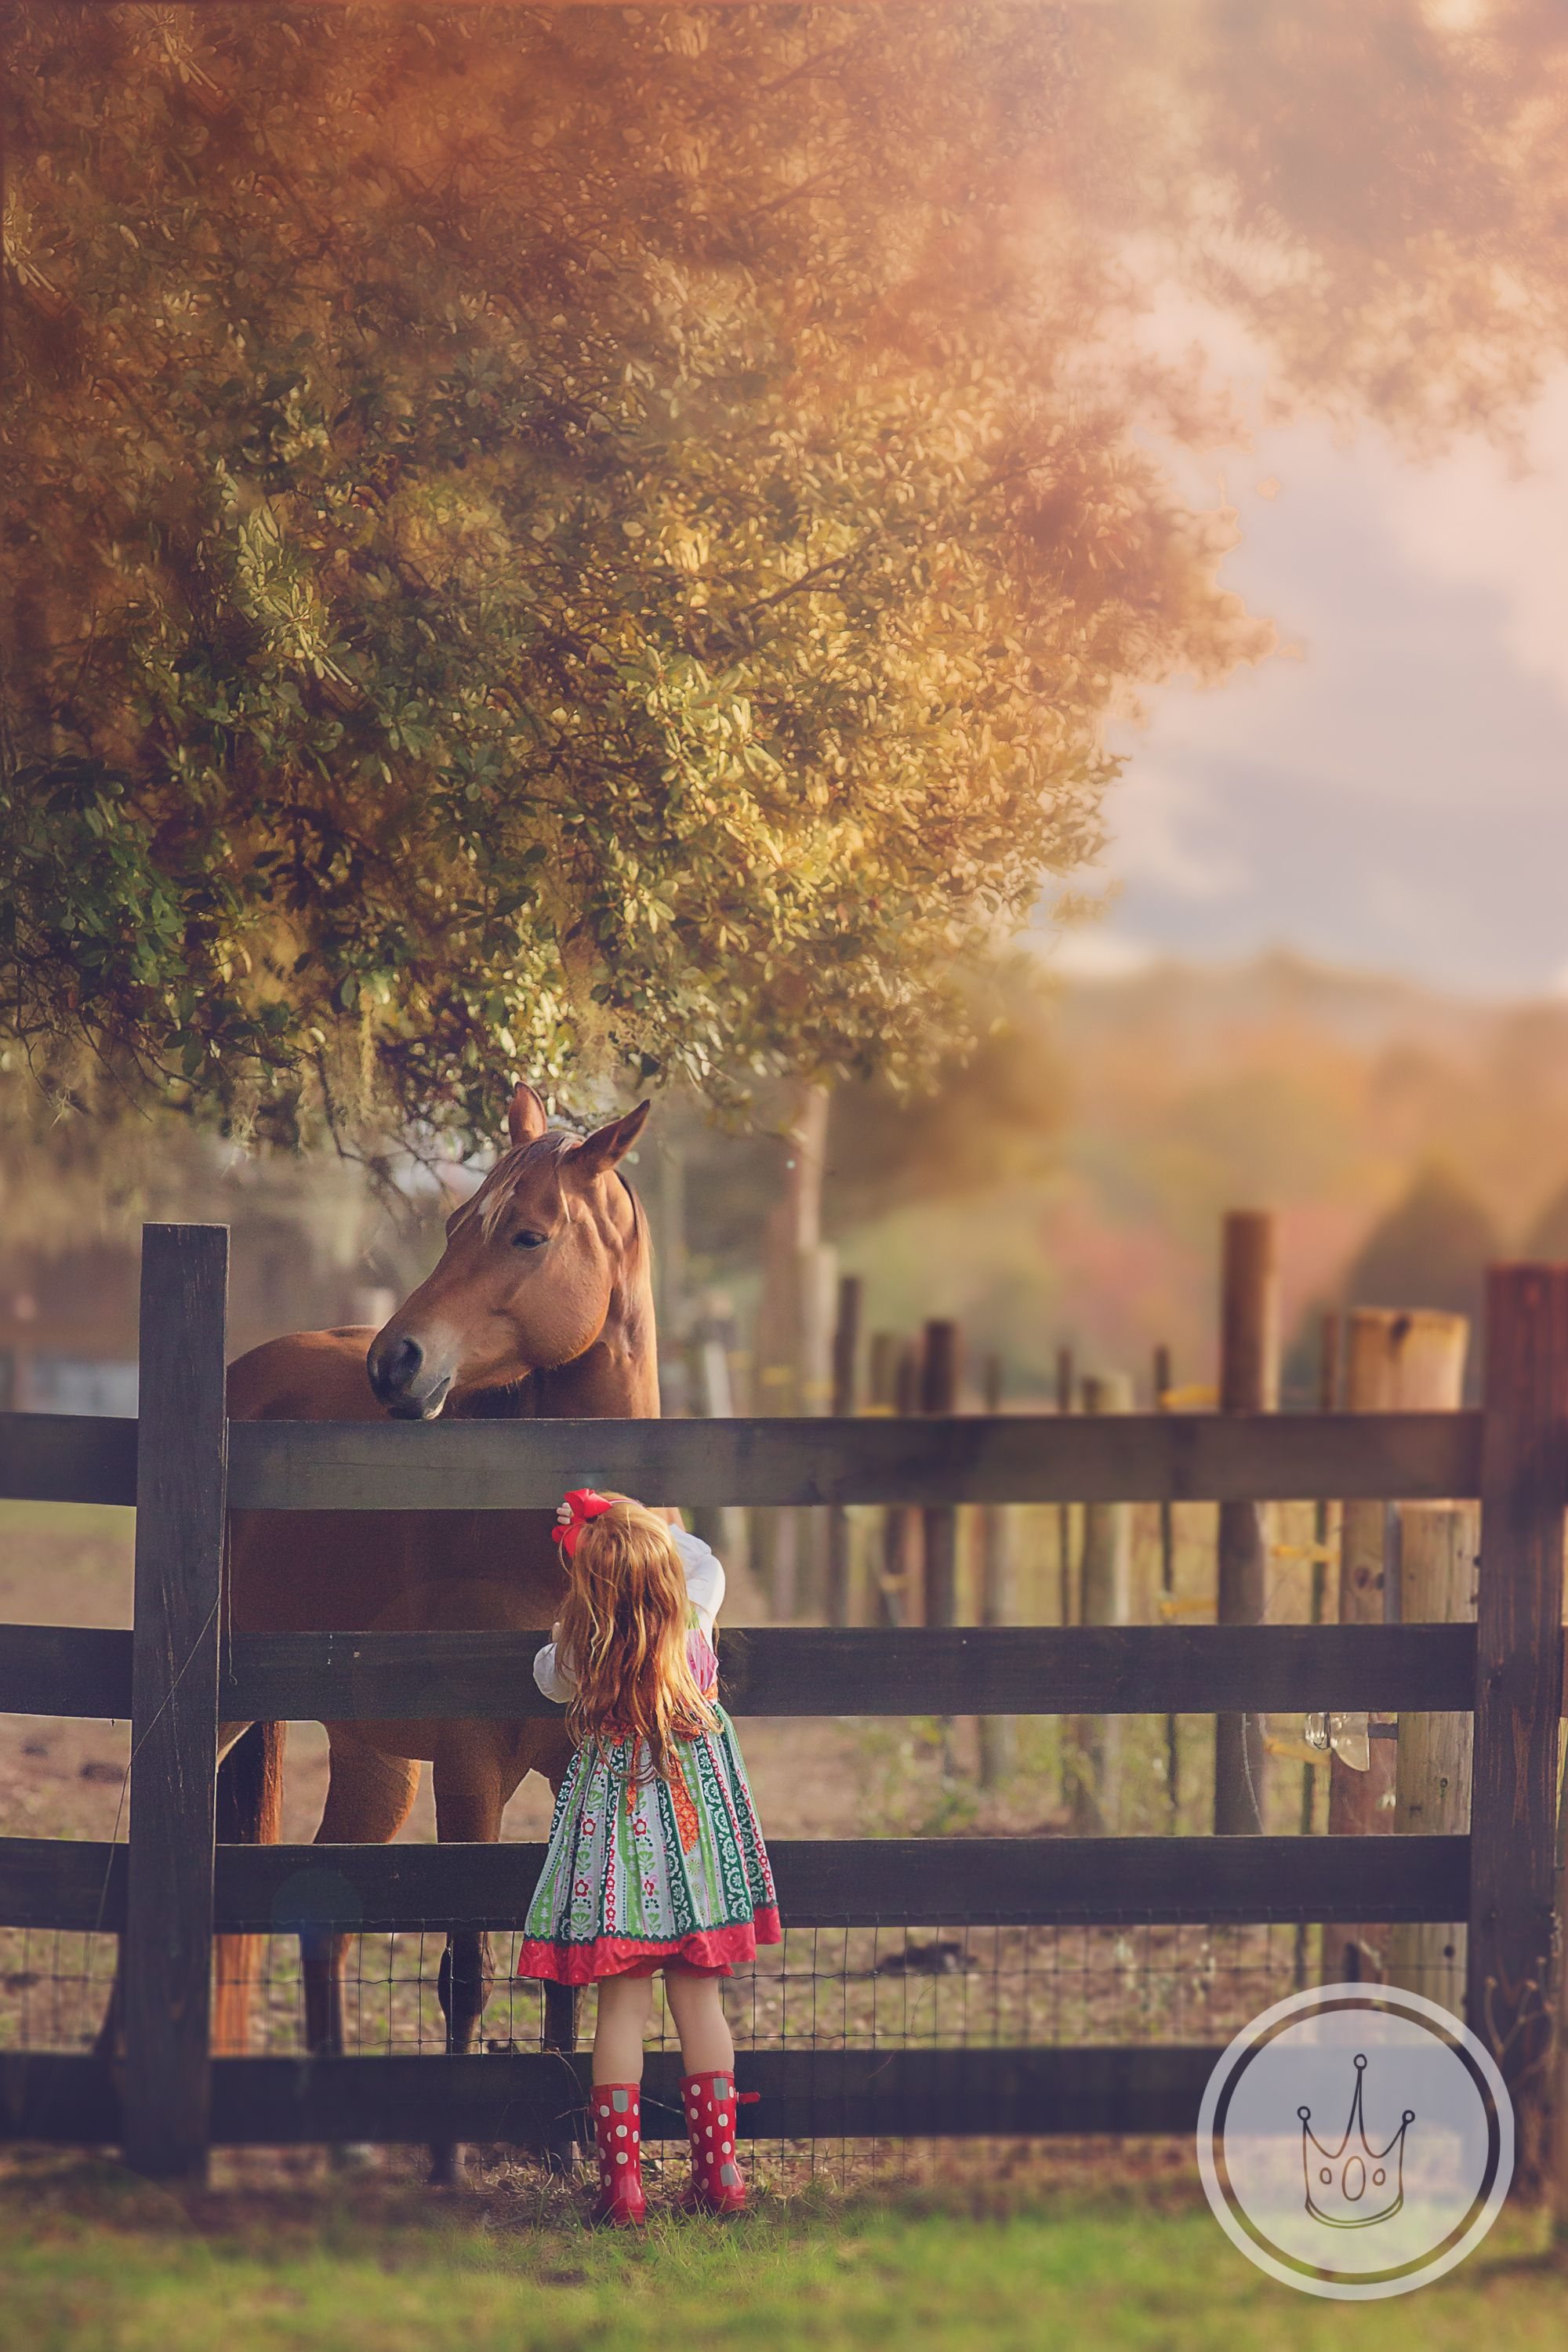 Cayden Lane Photography - stunning picture xx  the little girl looks so pretty and I love how it's just her and the horse x ;)